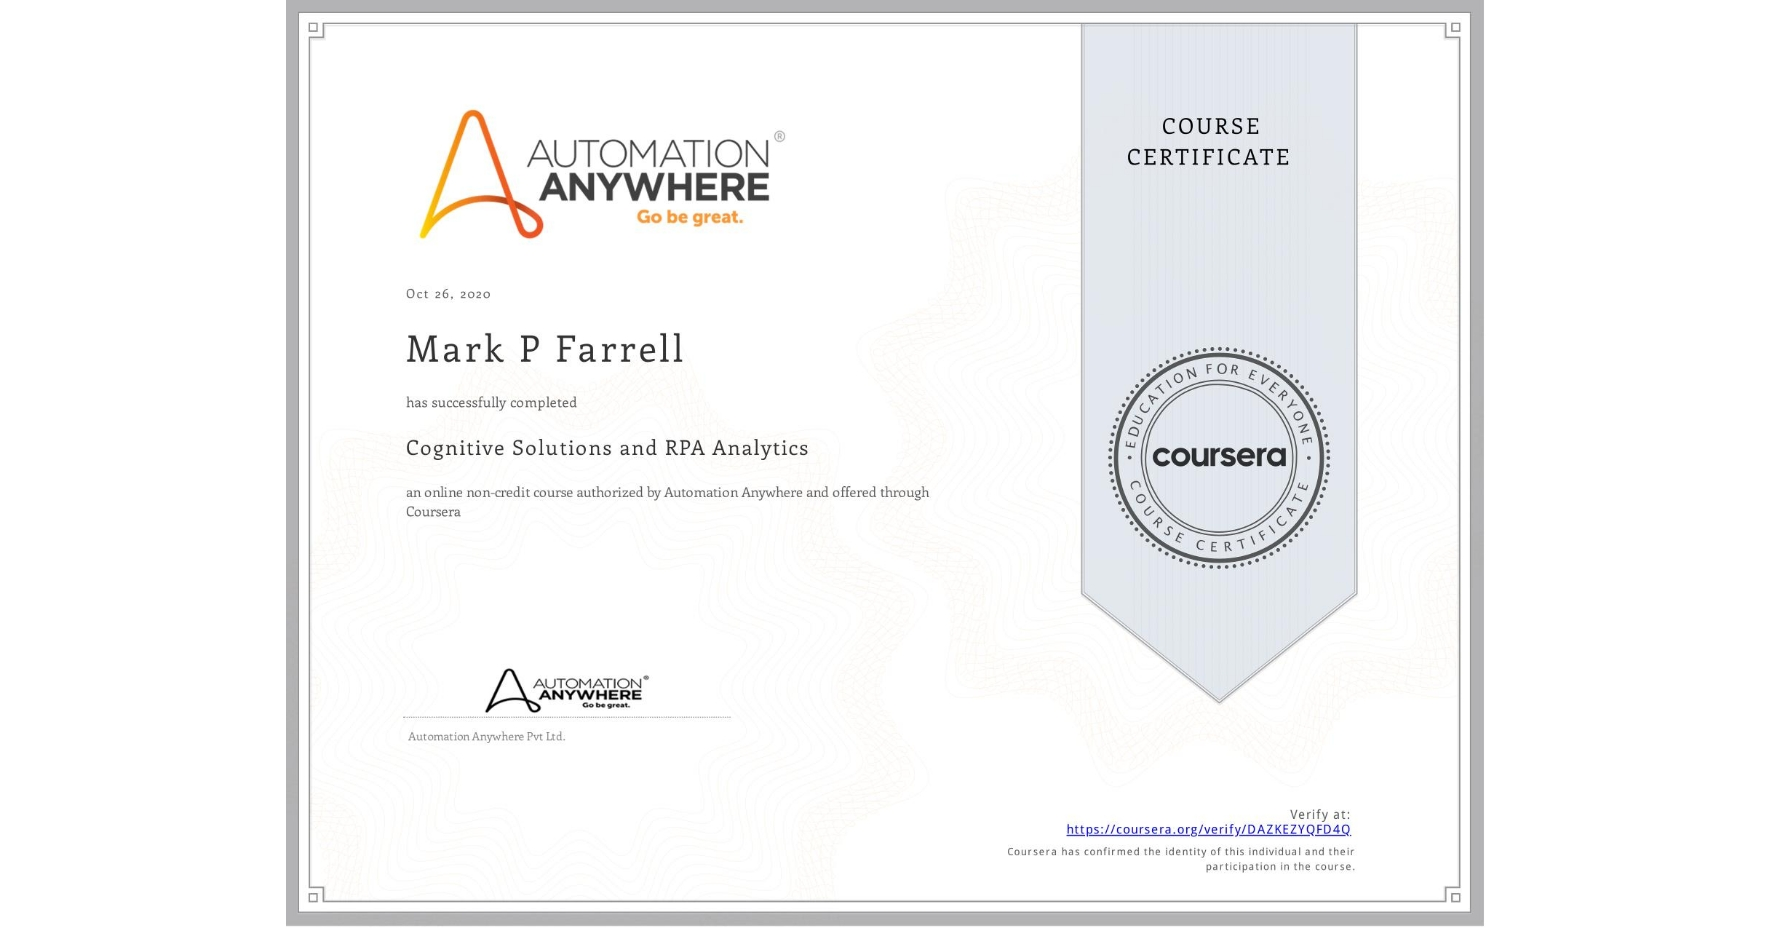 View certificate for Mark P Farrell, Cognitive Solutions and RPA Analytics, an online non-credit course authorized by Automation Anywhere and offered through Coursera